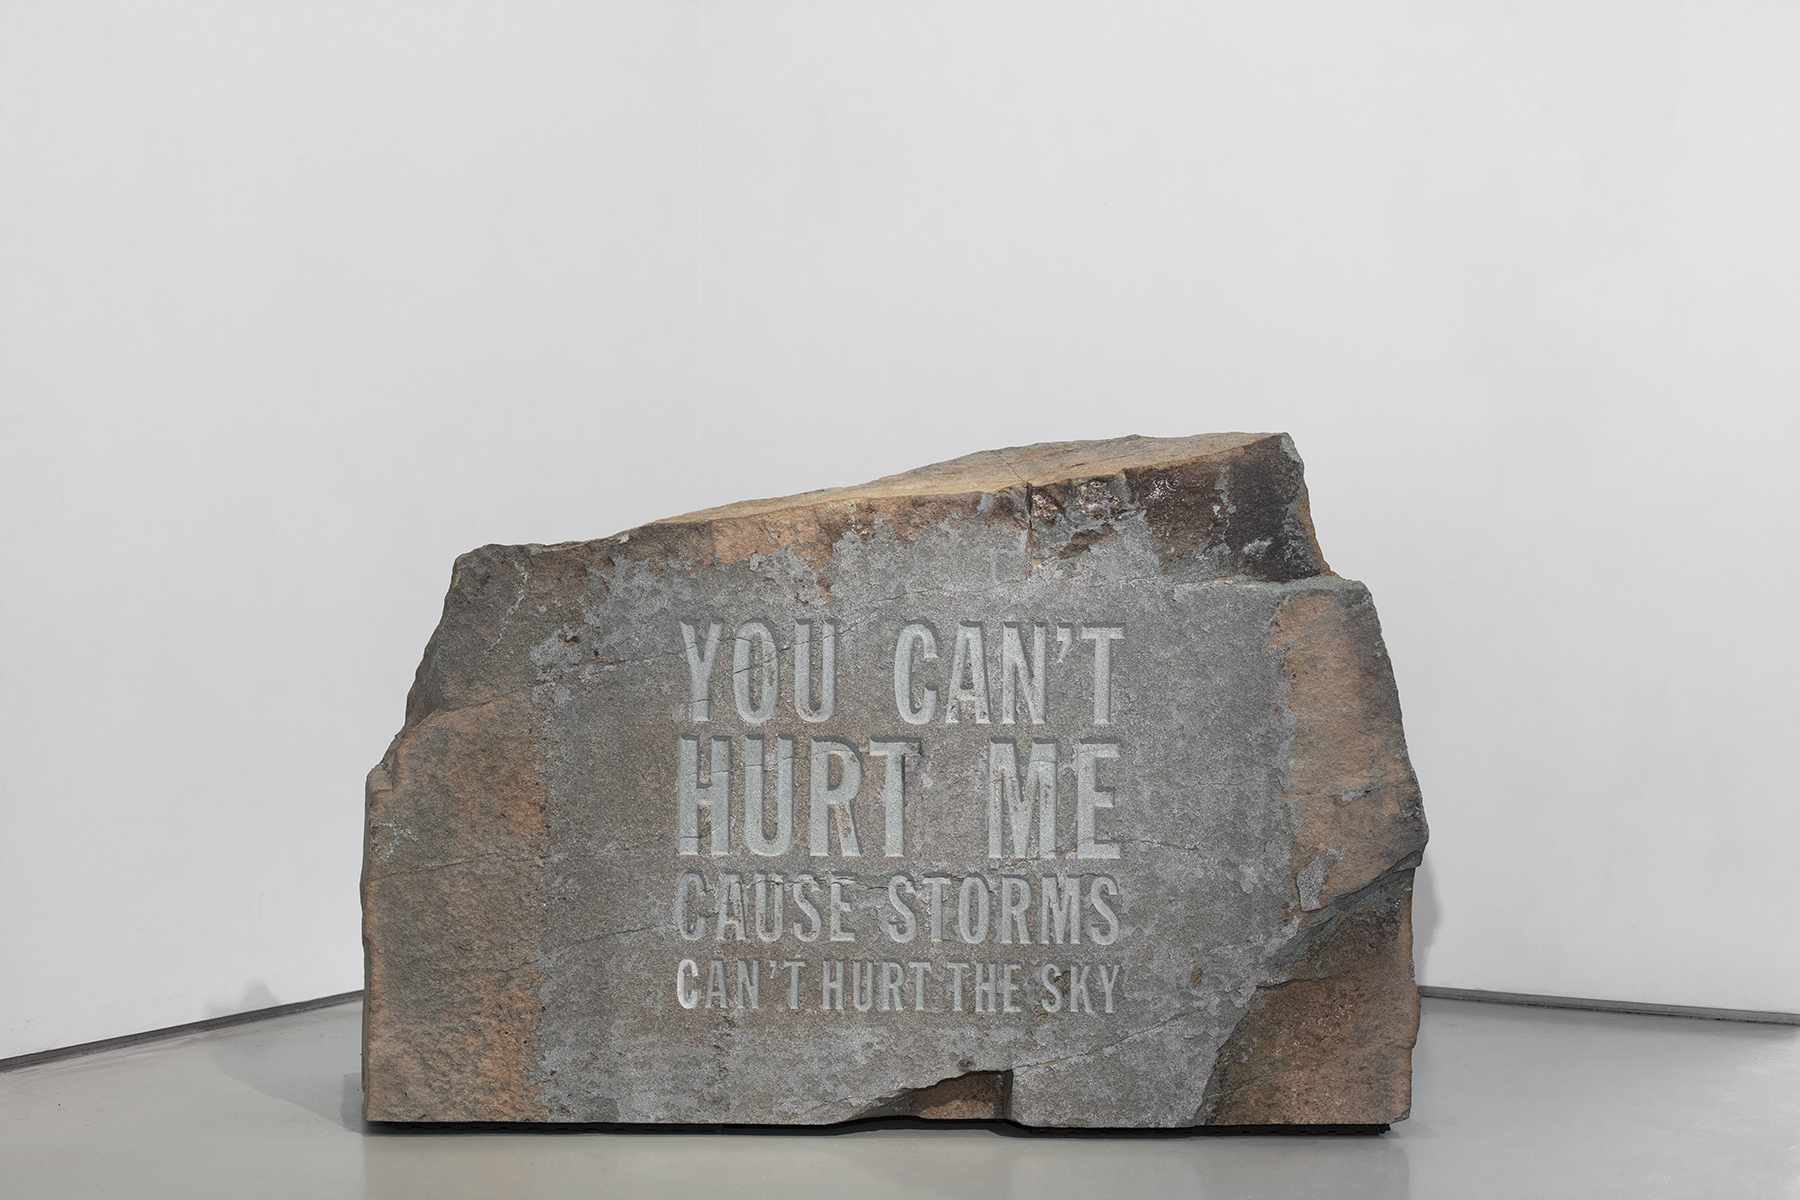 """John Giorno's """"You Can't Hurt Me Cause Storms Can't Hurt the Sky,"""" 2019."""